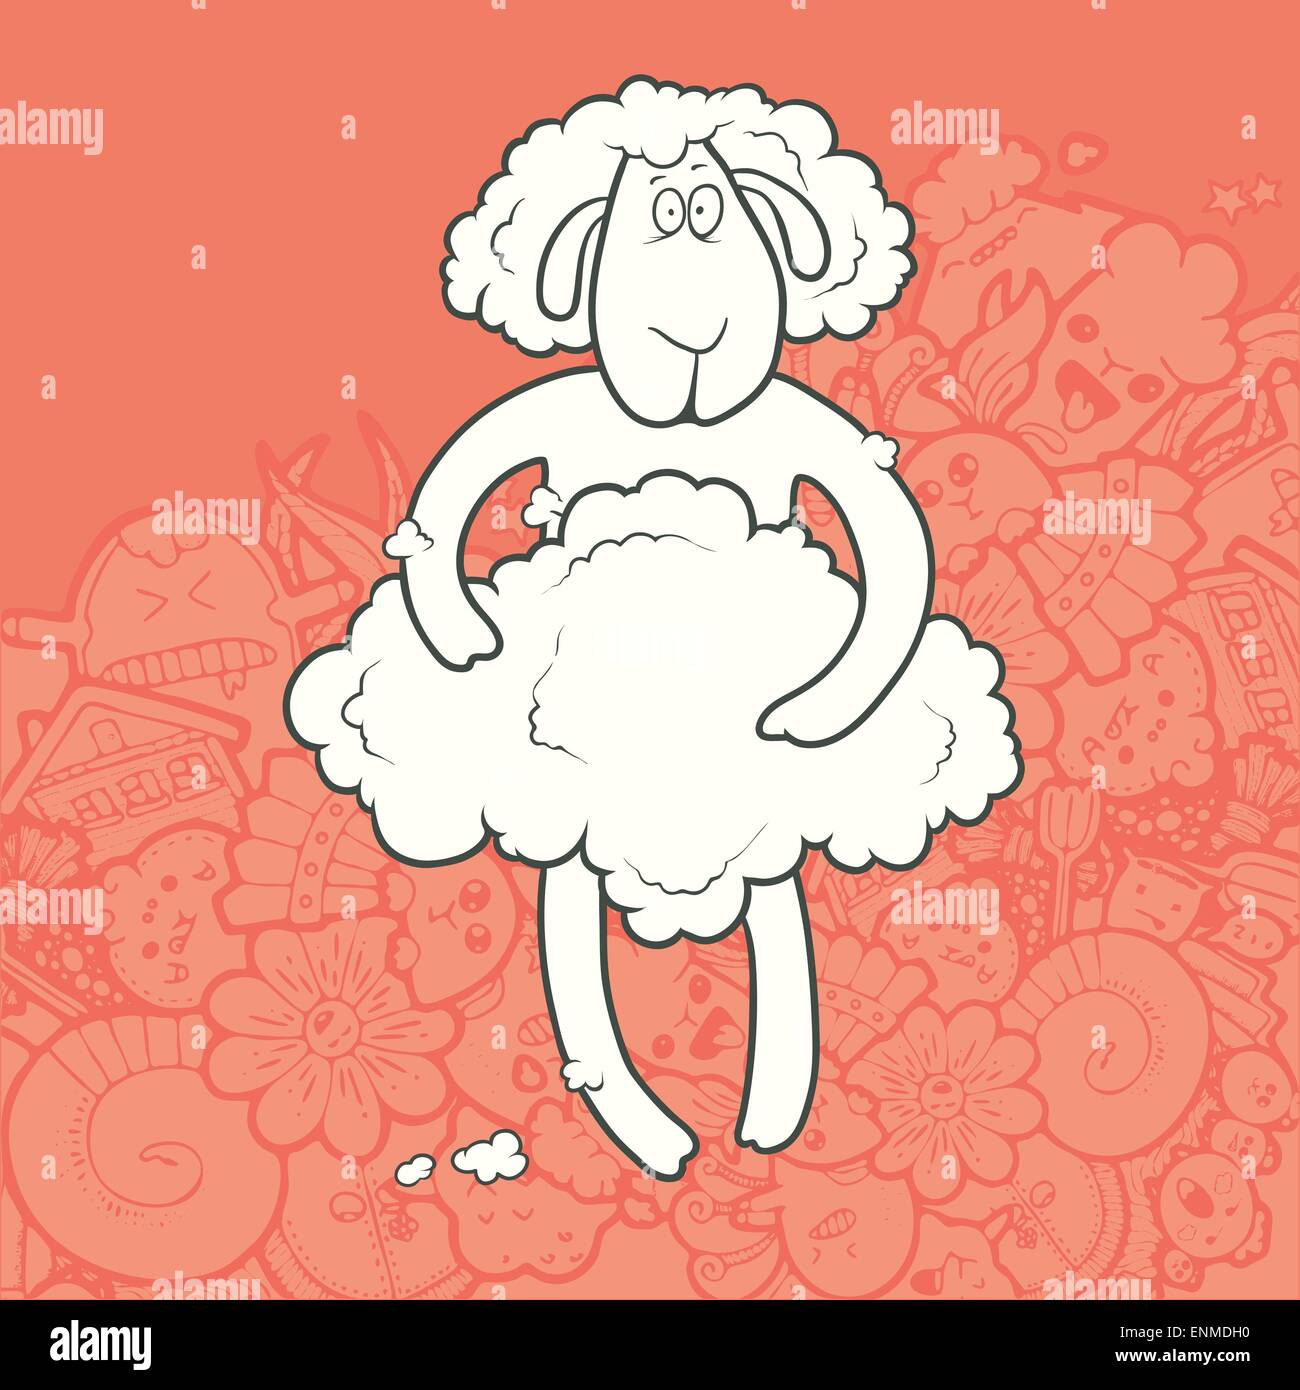 Vector Illustration Cute Hand Drawn shaved lamb holding its coat. Greeting card New Year. The concept of the character - Stock Image